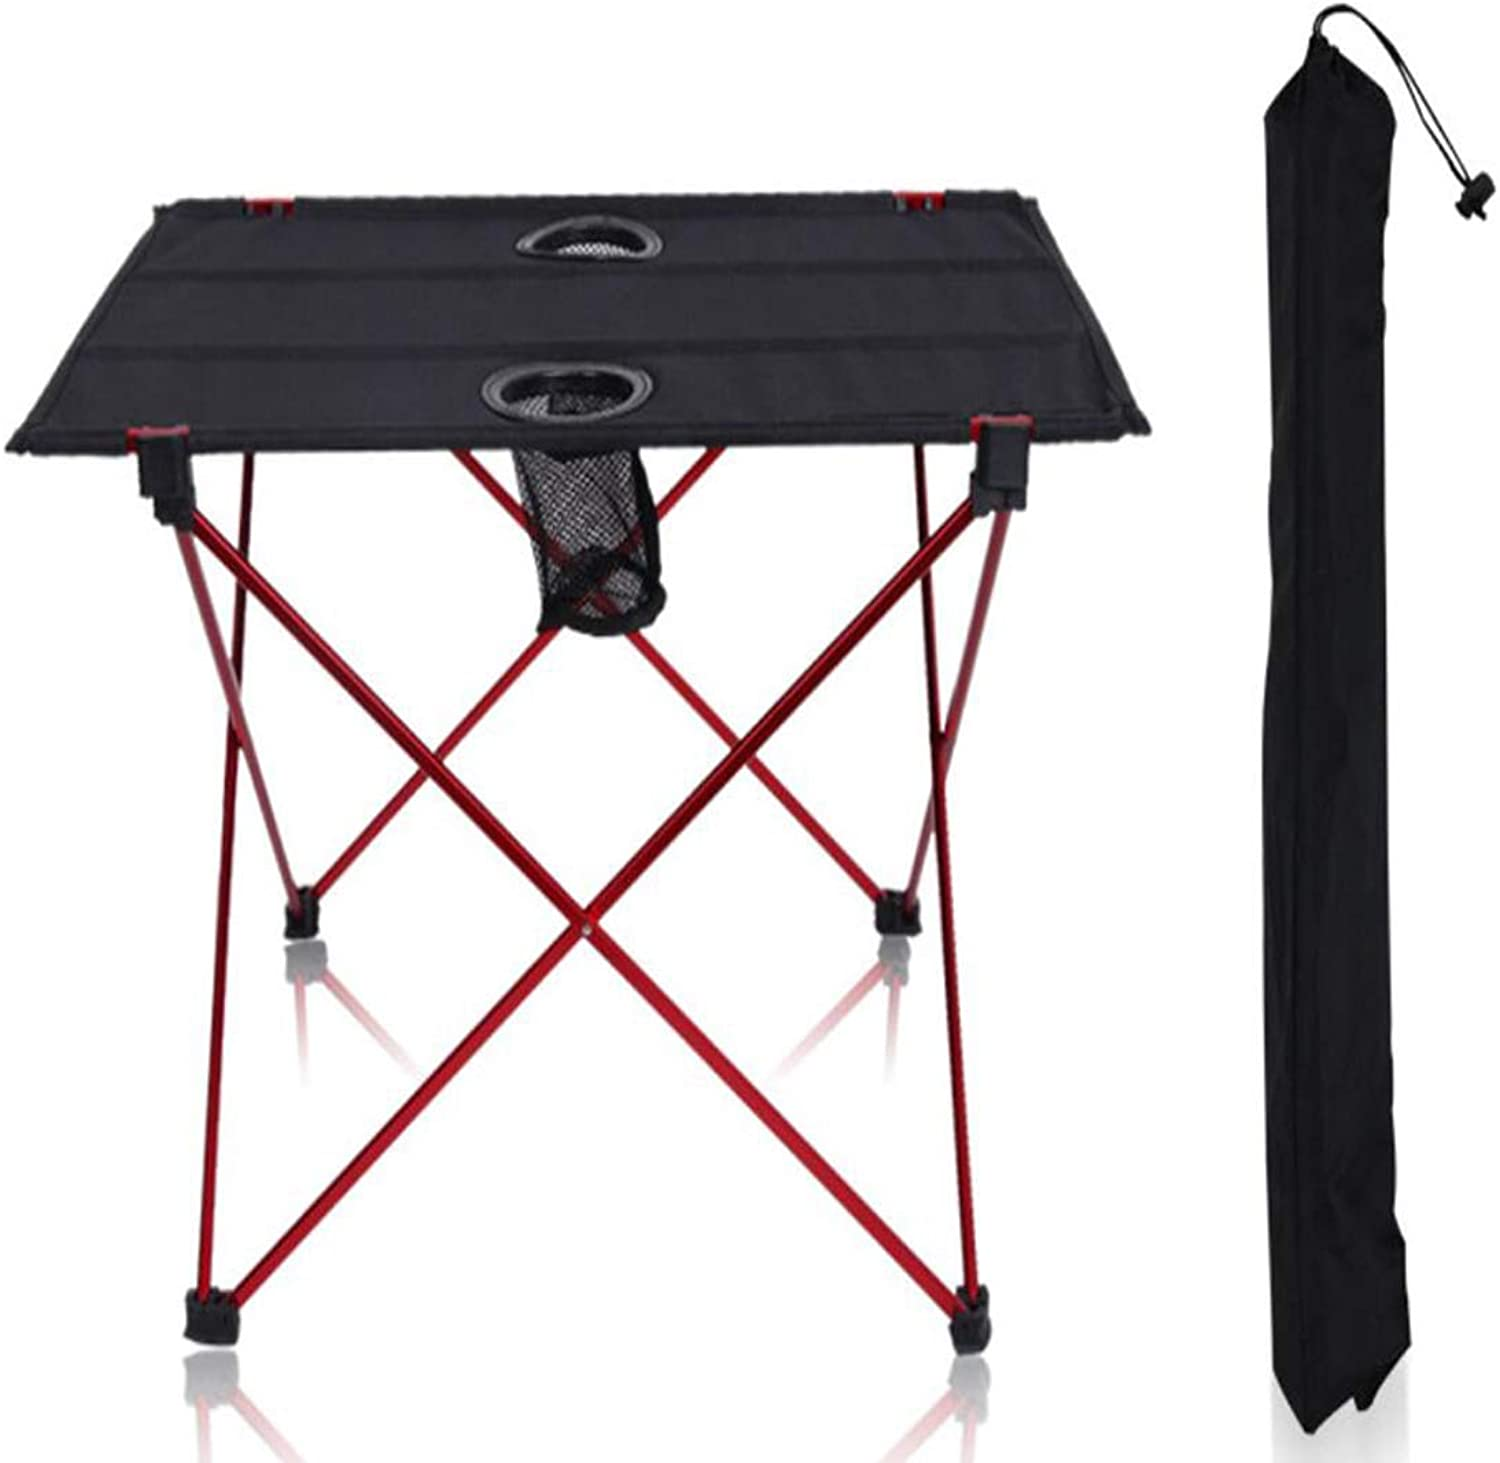 Folding Table, Black, Aluminum, Oxford, Outdoor Folding Table, Barbecue Picnic Table, with Storage Bag, Flexible, Lightweight